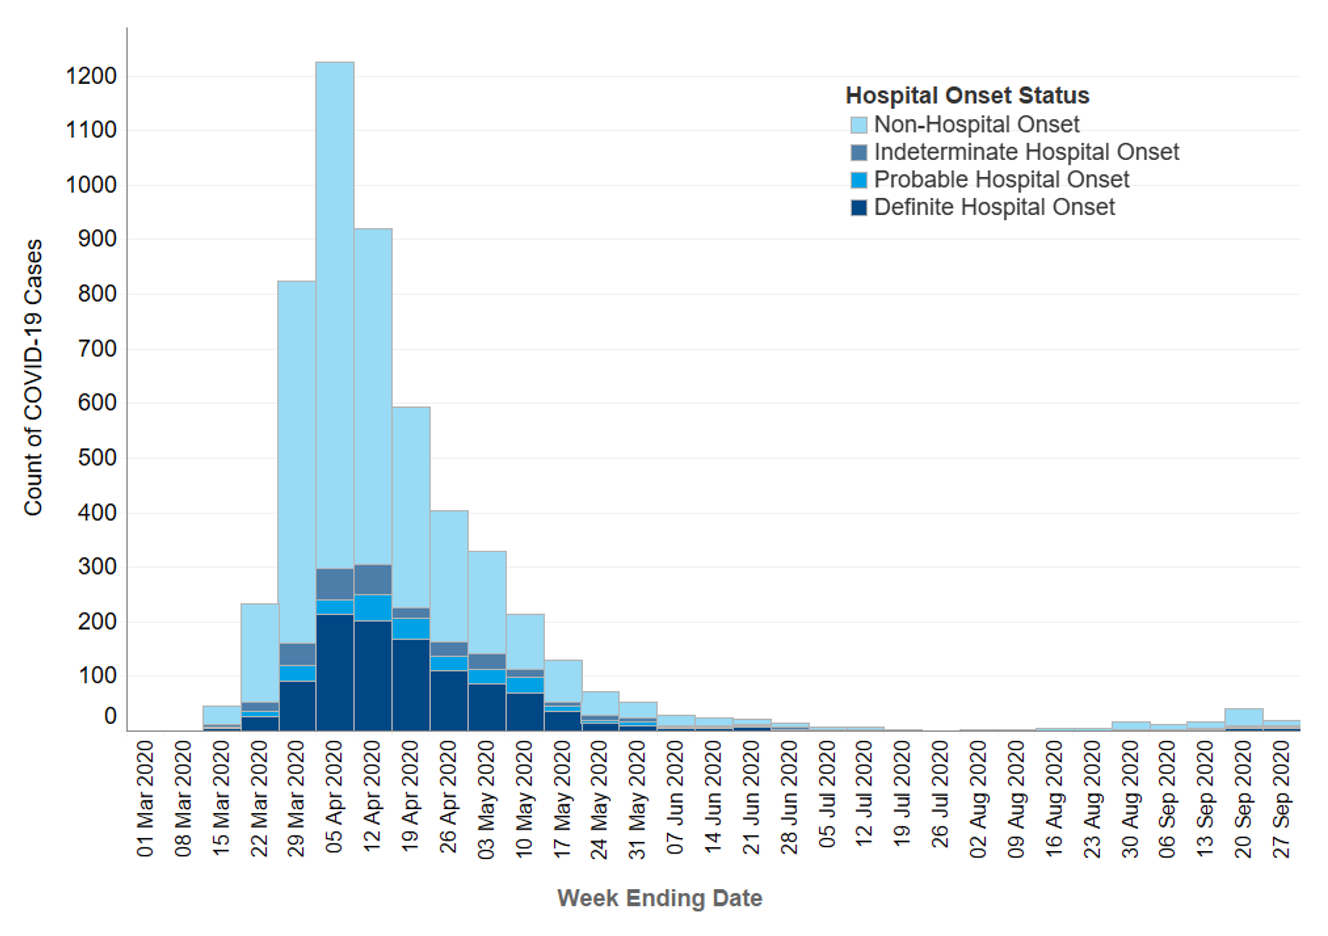 Figure: Epidemic curve of COVID-19 cases with first positive specimen taken during an inpatient stay, by onset status: week-ending 1 March to week-ending 27 September 2020   Figure is an epidemic curve of COVID-19 cases with first positive specimen taken during an inpatient stay. The length of the bars are the counts of COVID-19 cases during each week, from week ending 1 March to week ending 27 September 2020, with the bars broken down by hospital onset status: non-hospital onset (day 1 or 2 of in-patient stay), indeterminate hospital onset, probable hospital onset and definite hospital onset. The chart shows a steep increase in overall cases and definite hospital onset cases until a peak on week ending 5 April. This is followed by a decline in overall cases and definite hospital onset cases with few cases observed during July and August. However overall cases and definite hospital onset cases have started to increase since week ending 30 Aug.